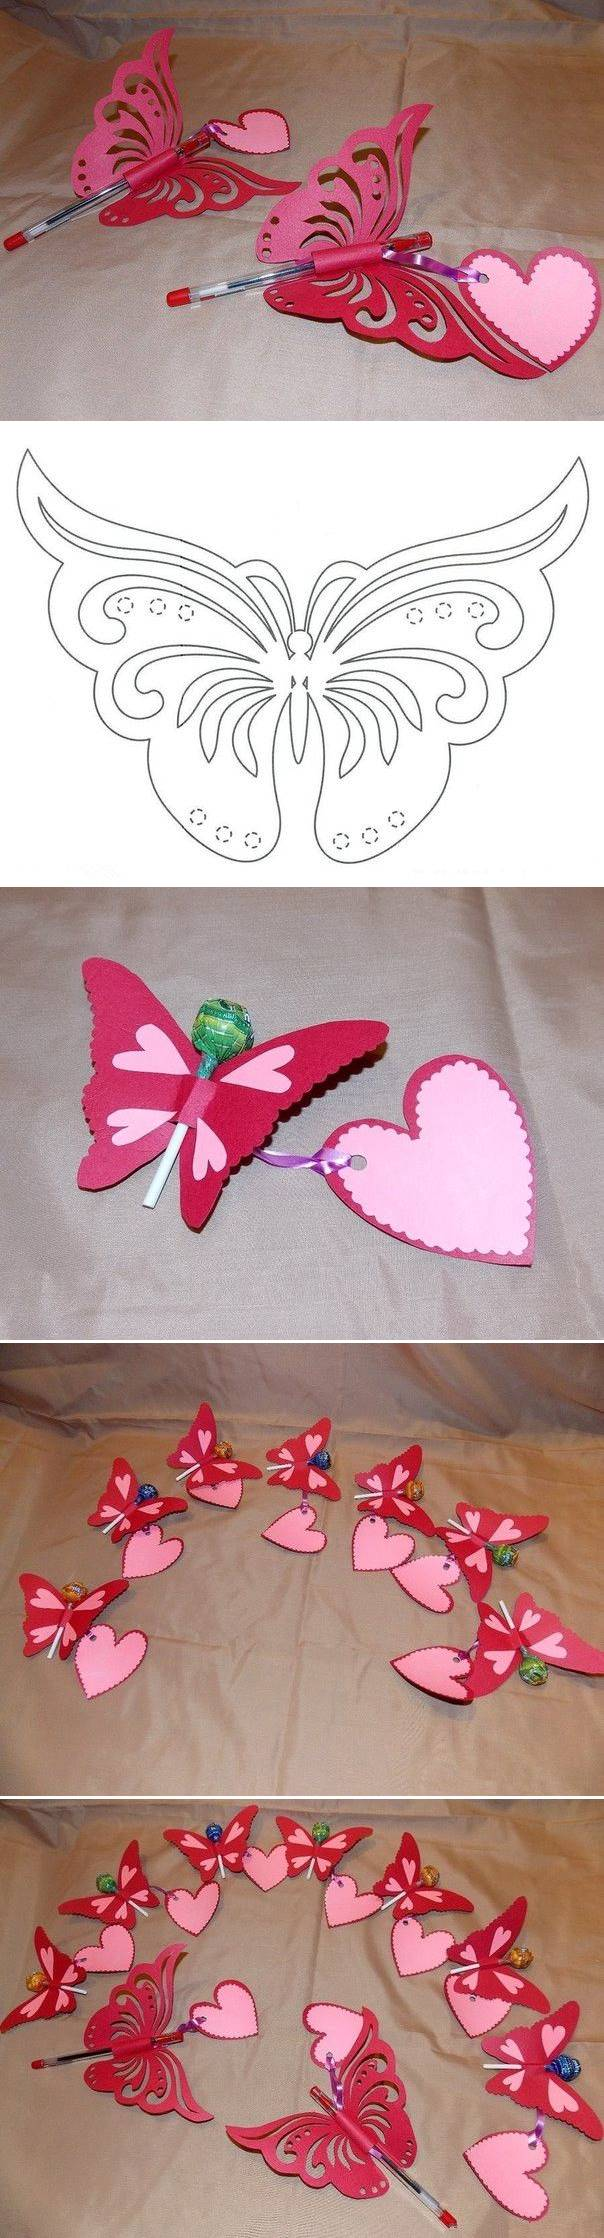 Creative Ideas DIY Pretty Kirigami Butterfly Postcard From Template